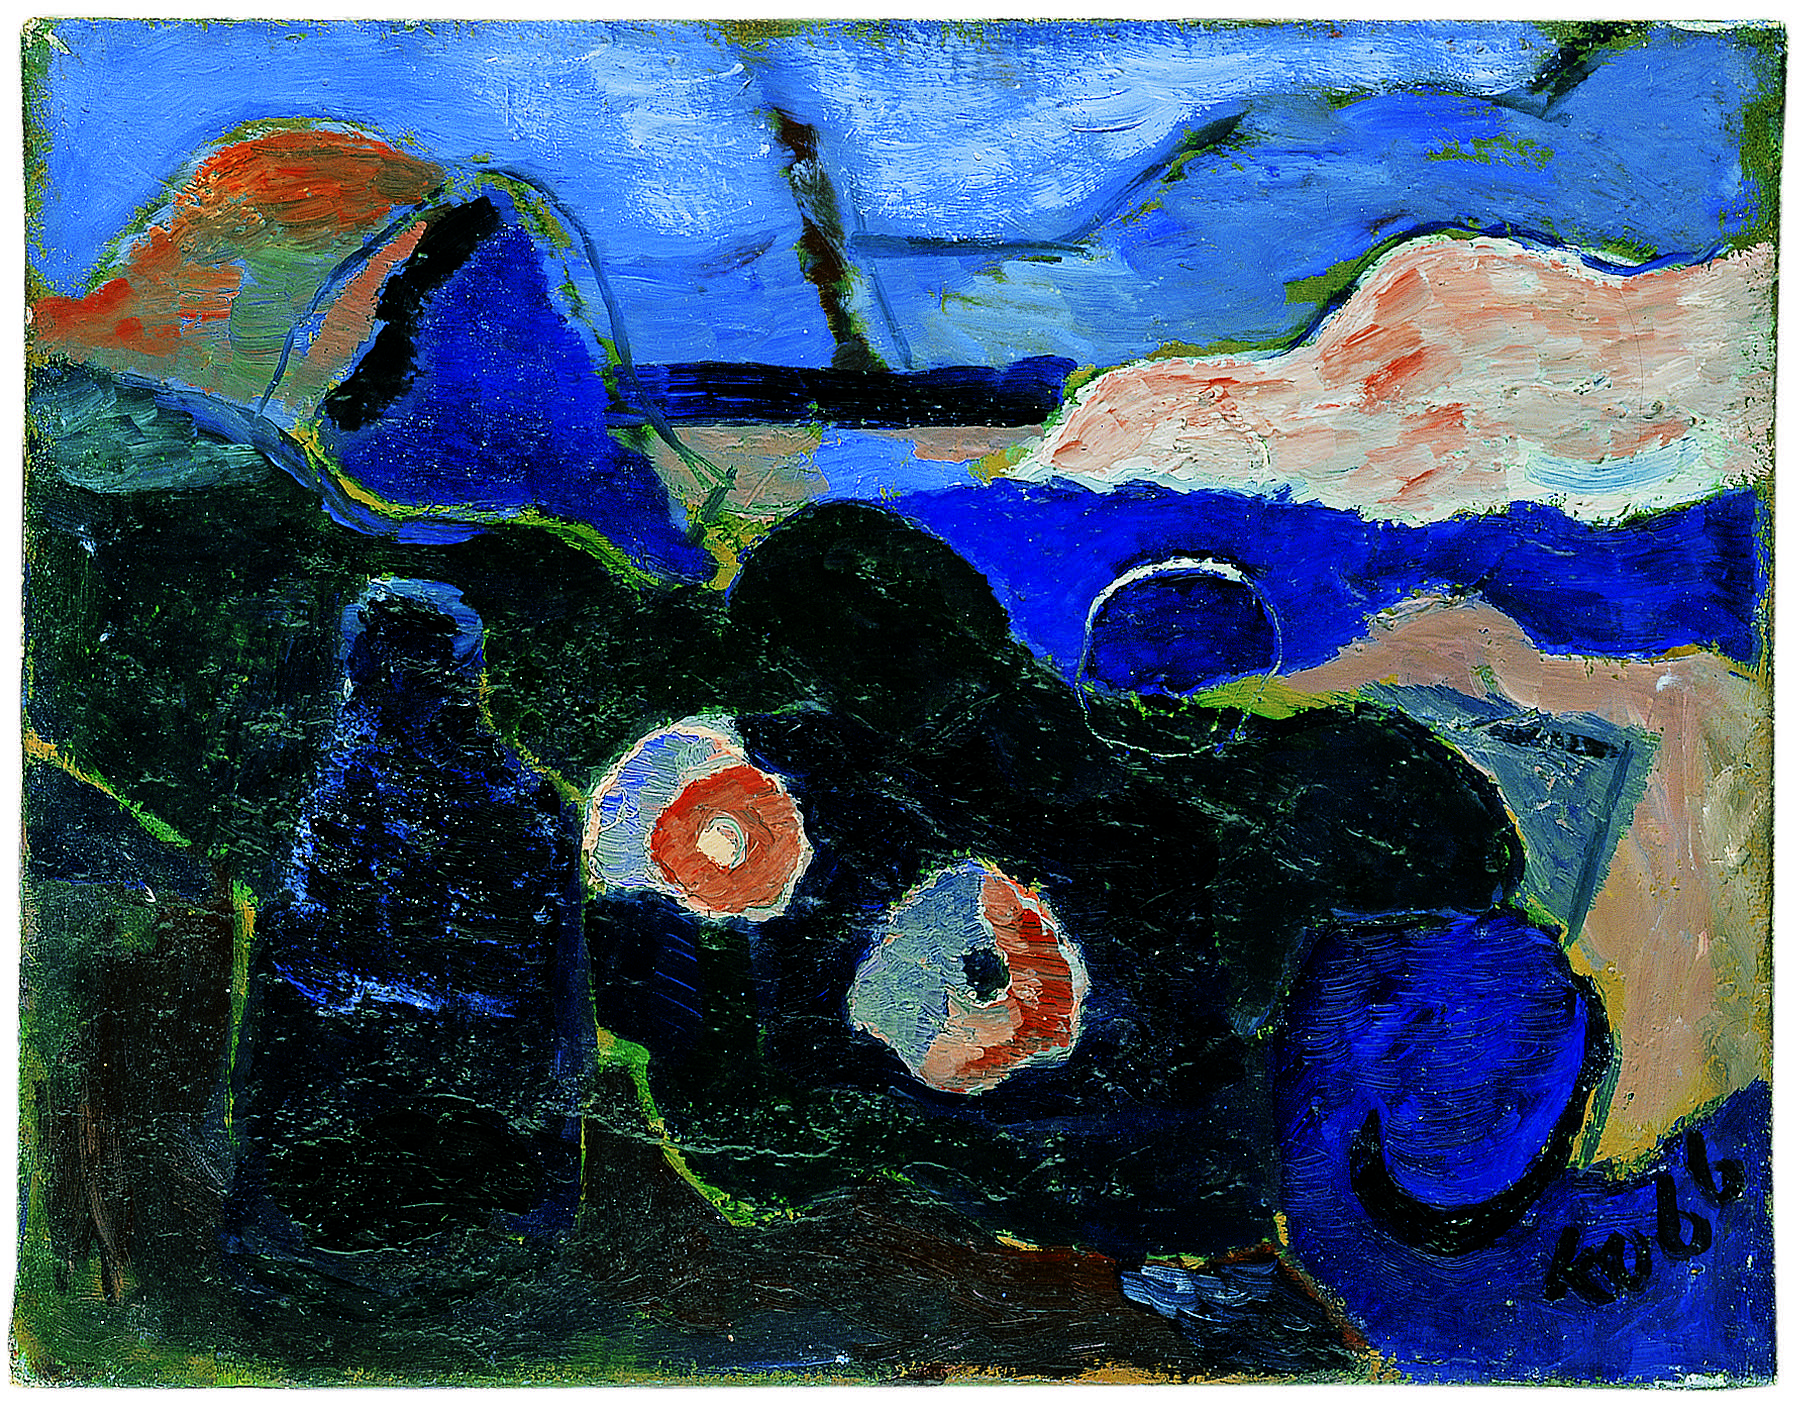 Untitled, 1966, Oil on canvas, 18.50h x 23.62w in (47h x 60w cm)